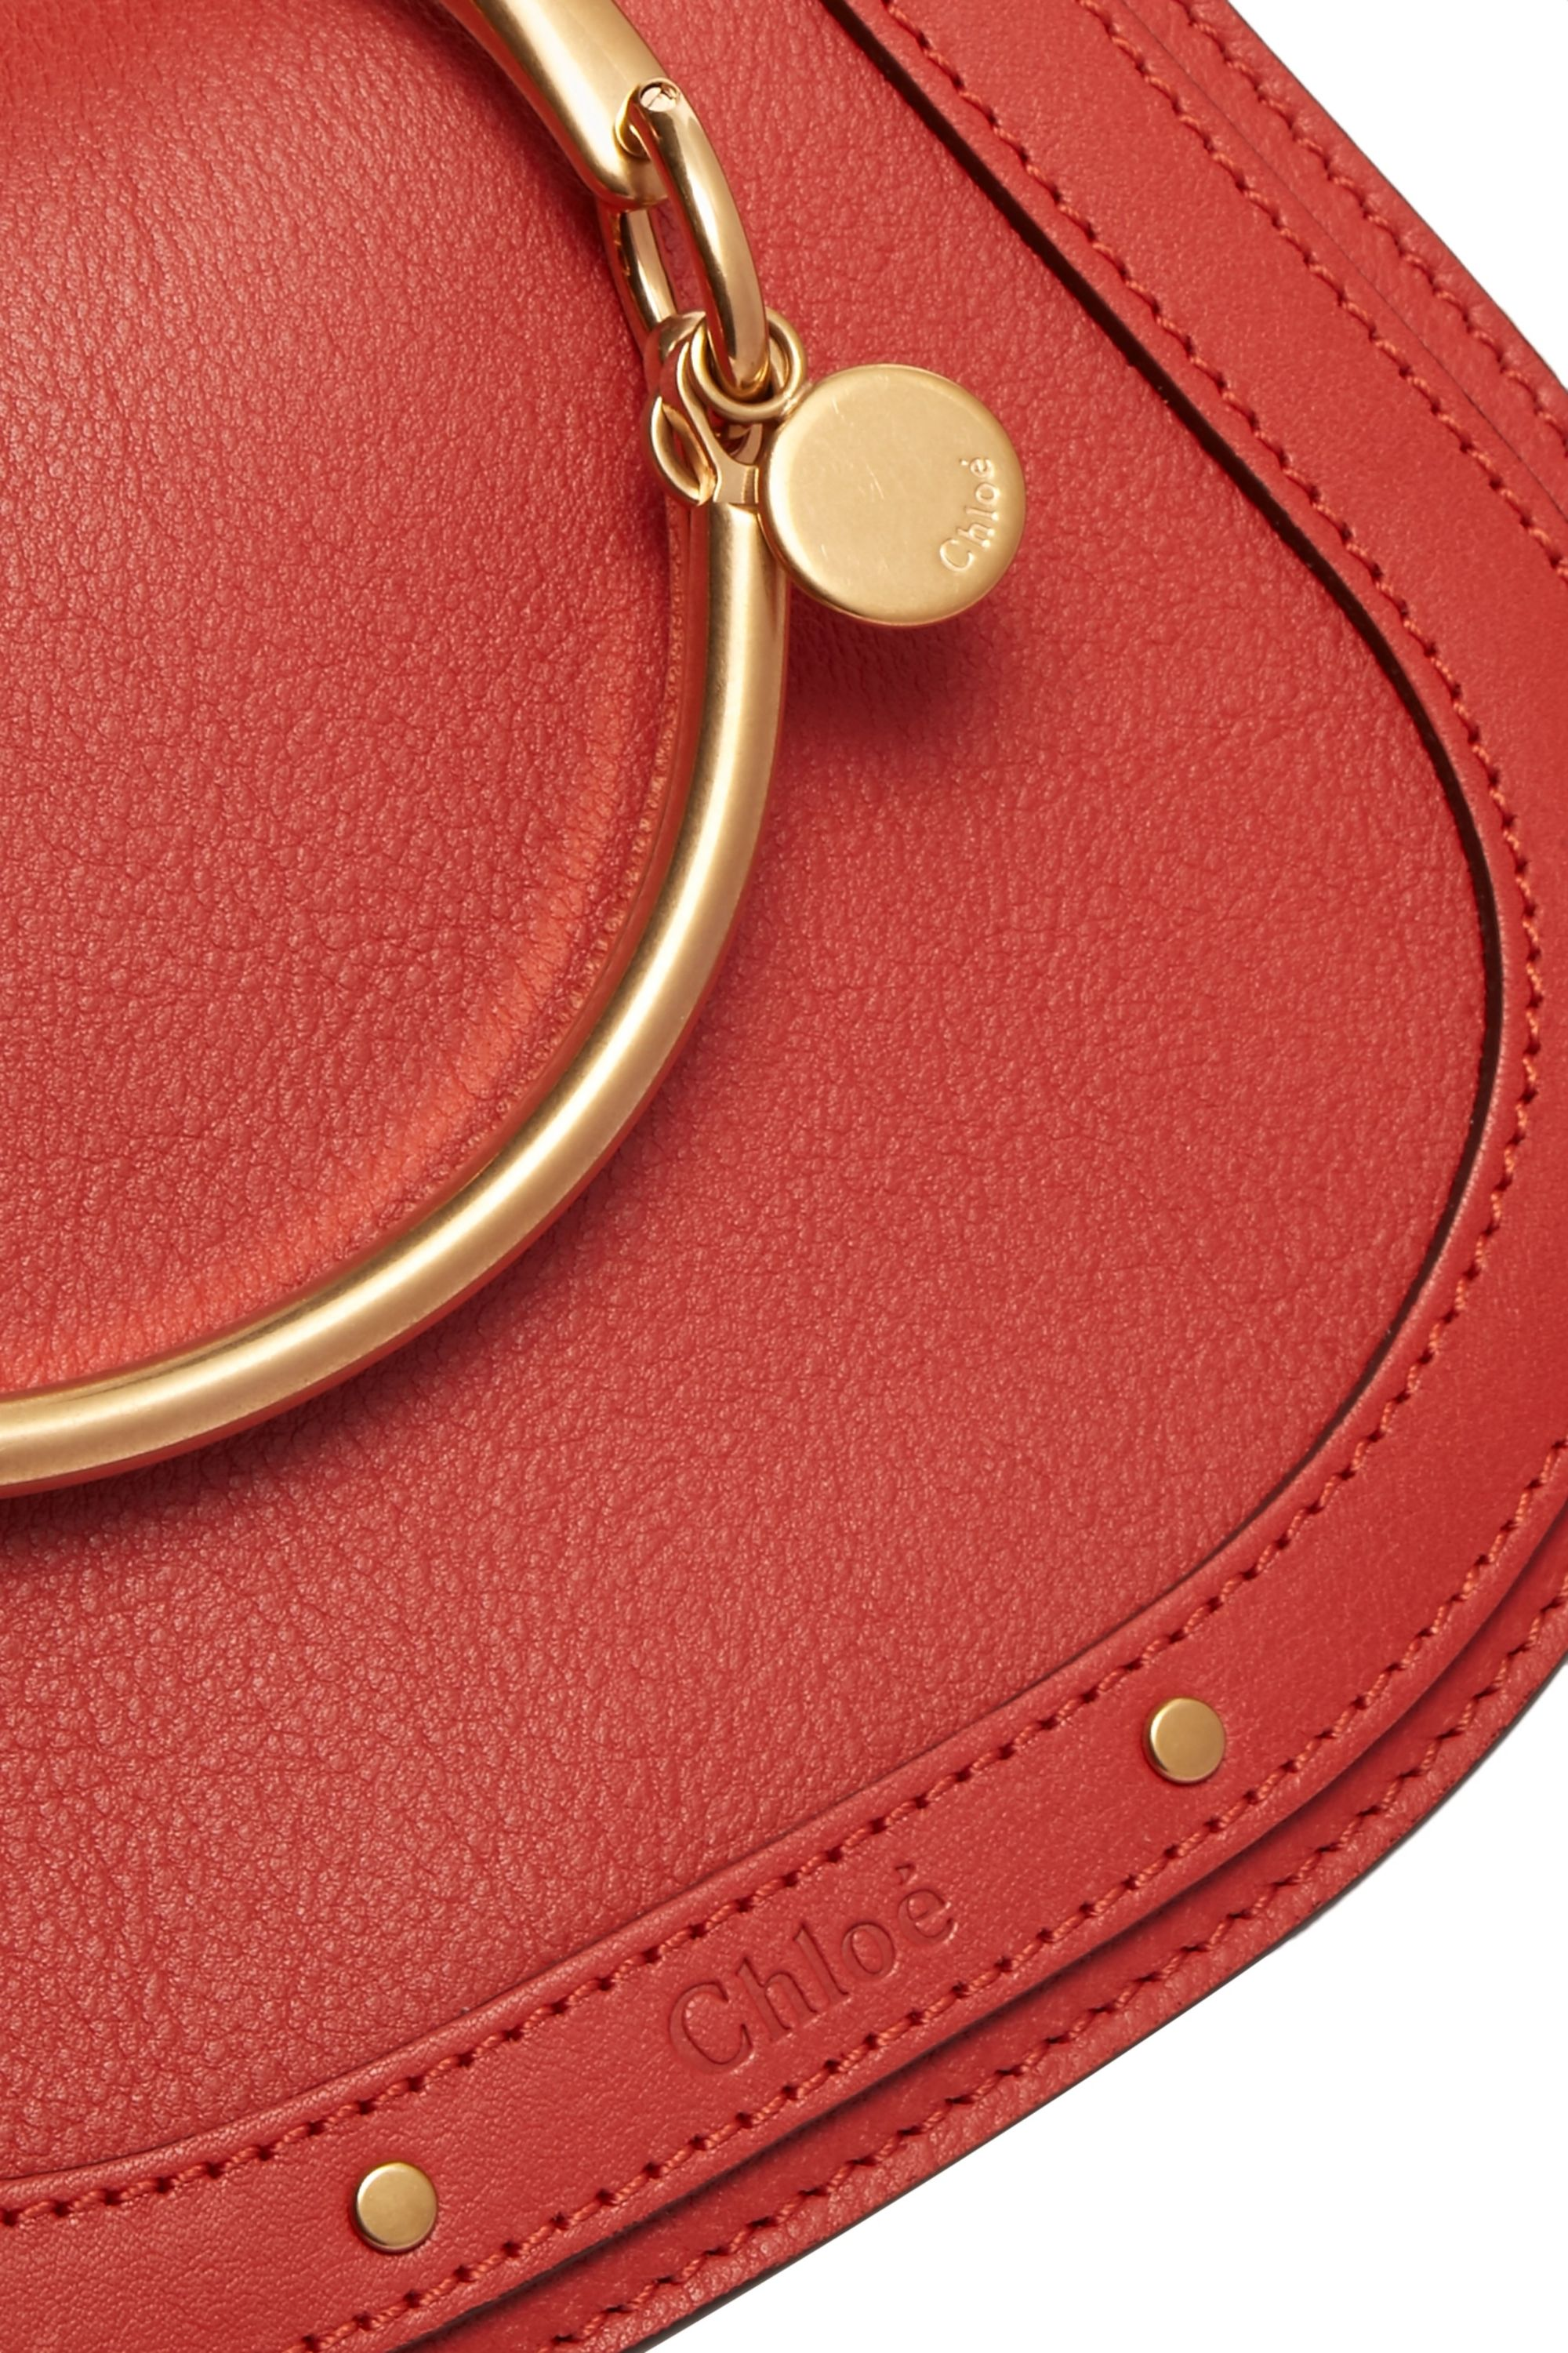 Chloé Nile Bracelet small leather and suede shoulder bag